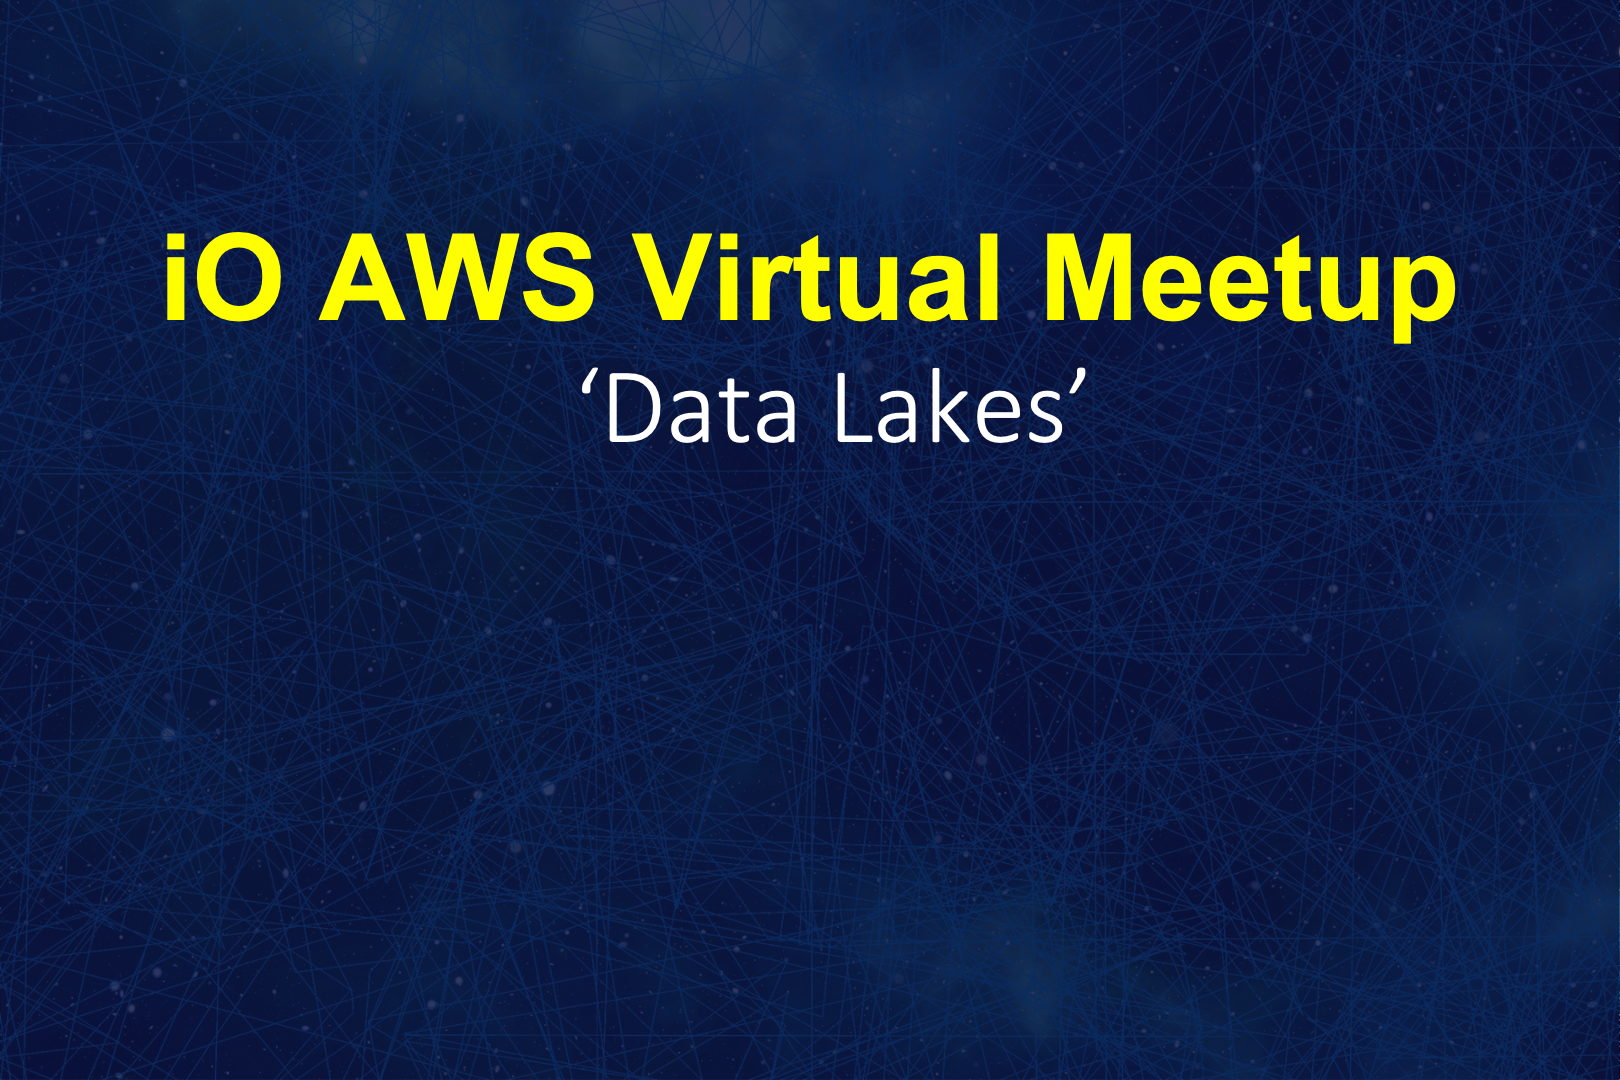 Aws Data Lakes Graphic